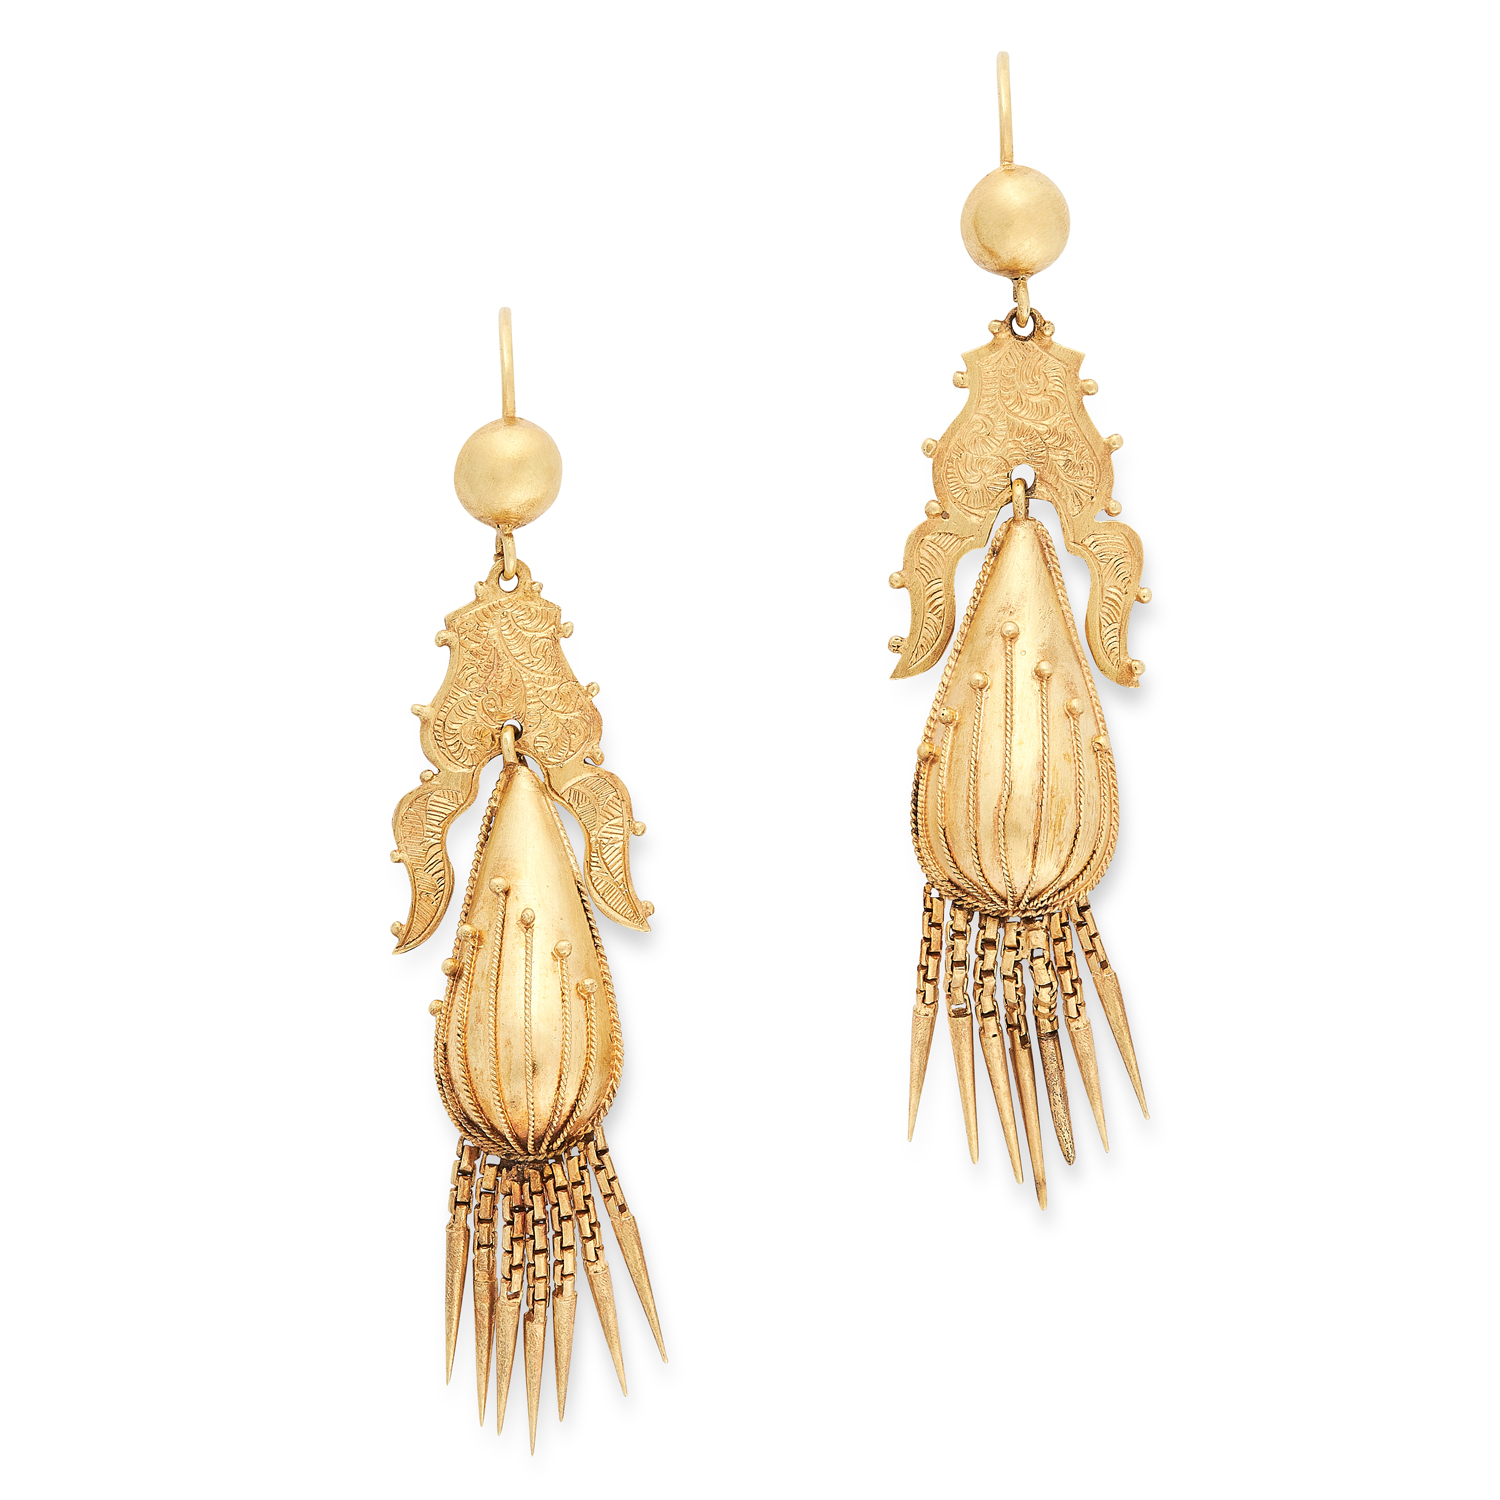 A PAIR OF ANTIQUE VICTORIAN TASSEL EARRINGS, 19TH CENTURY in high carat yellow gold, the articulated